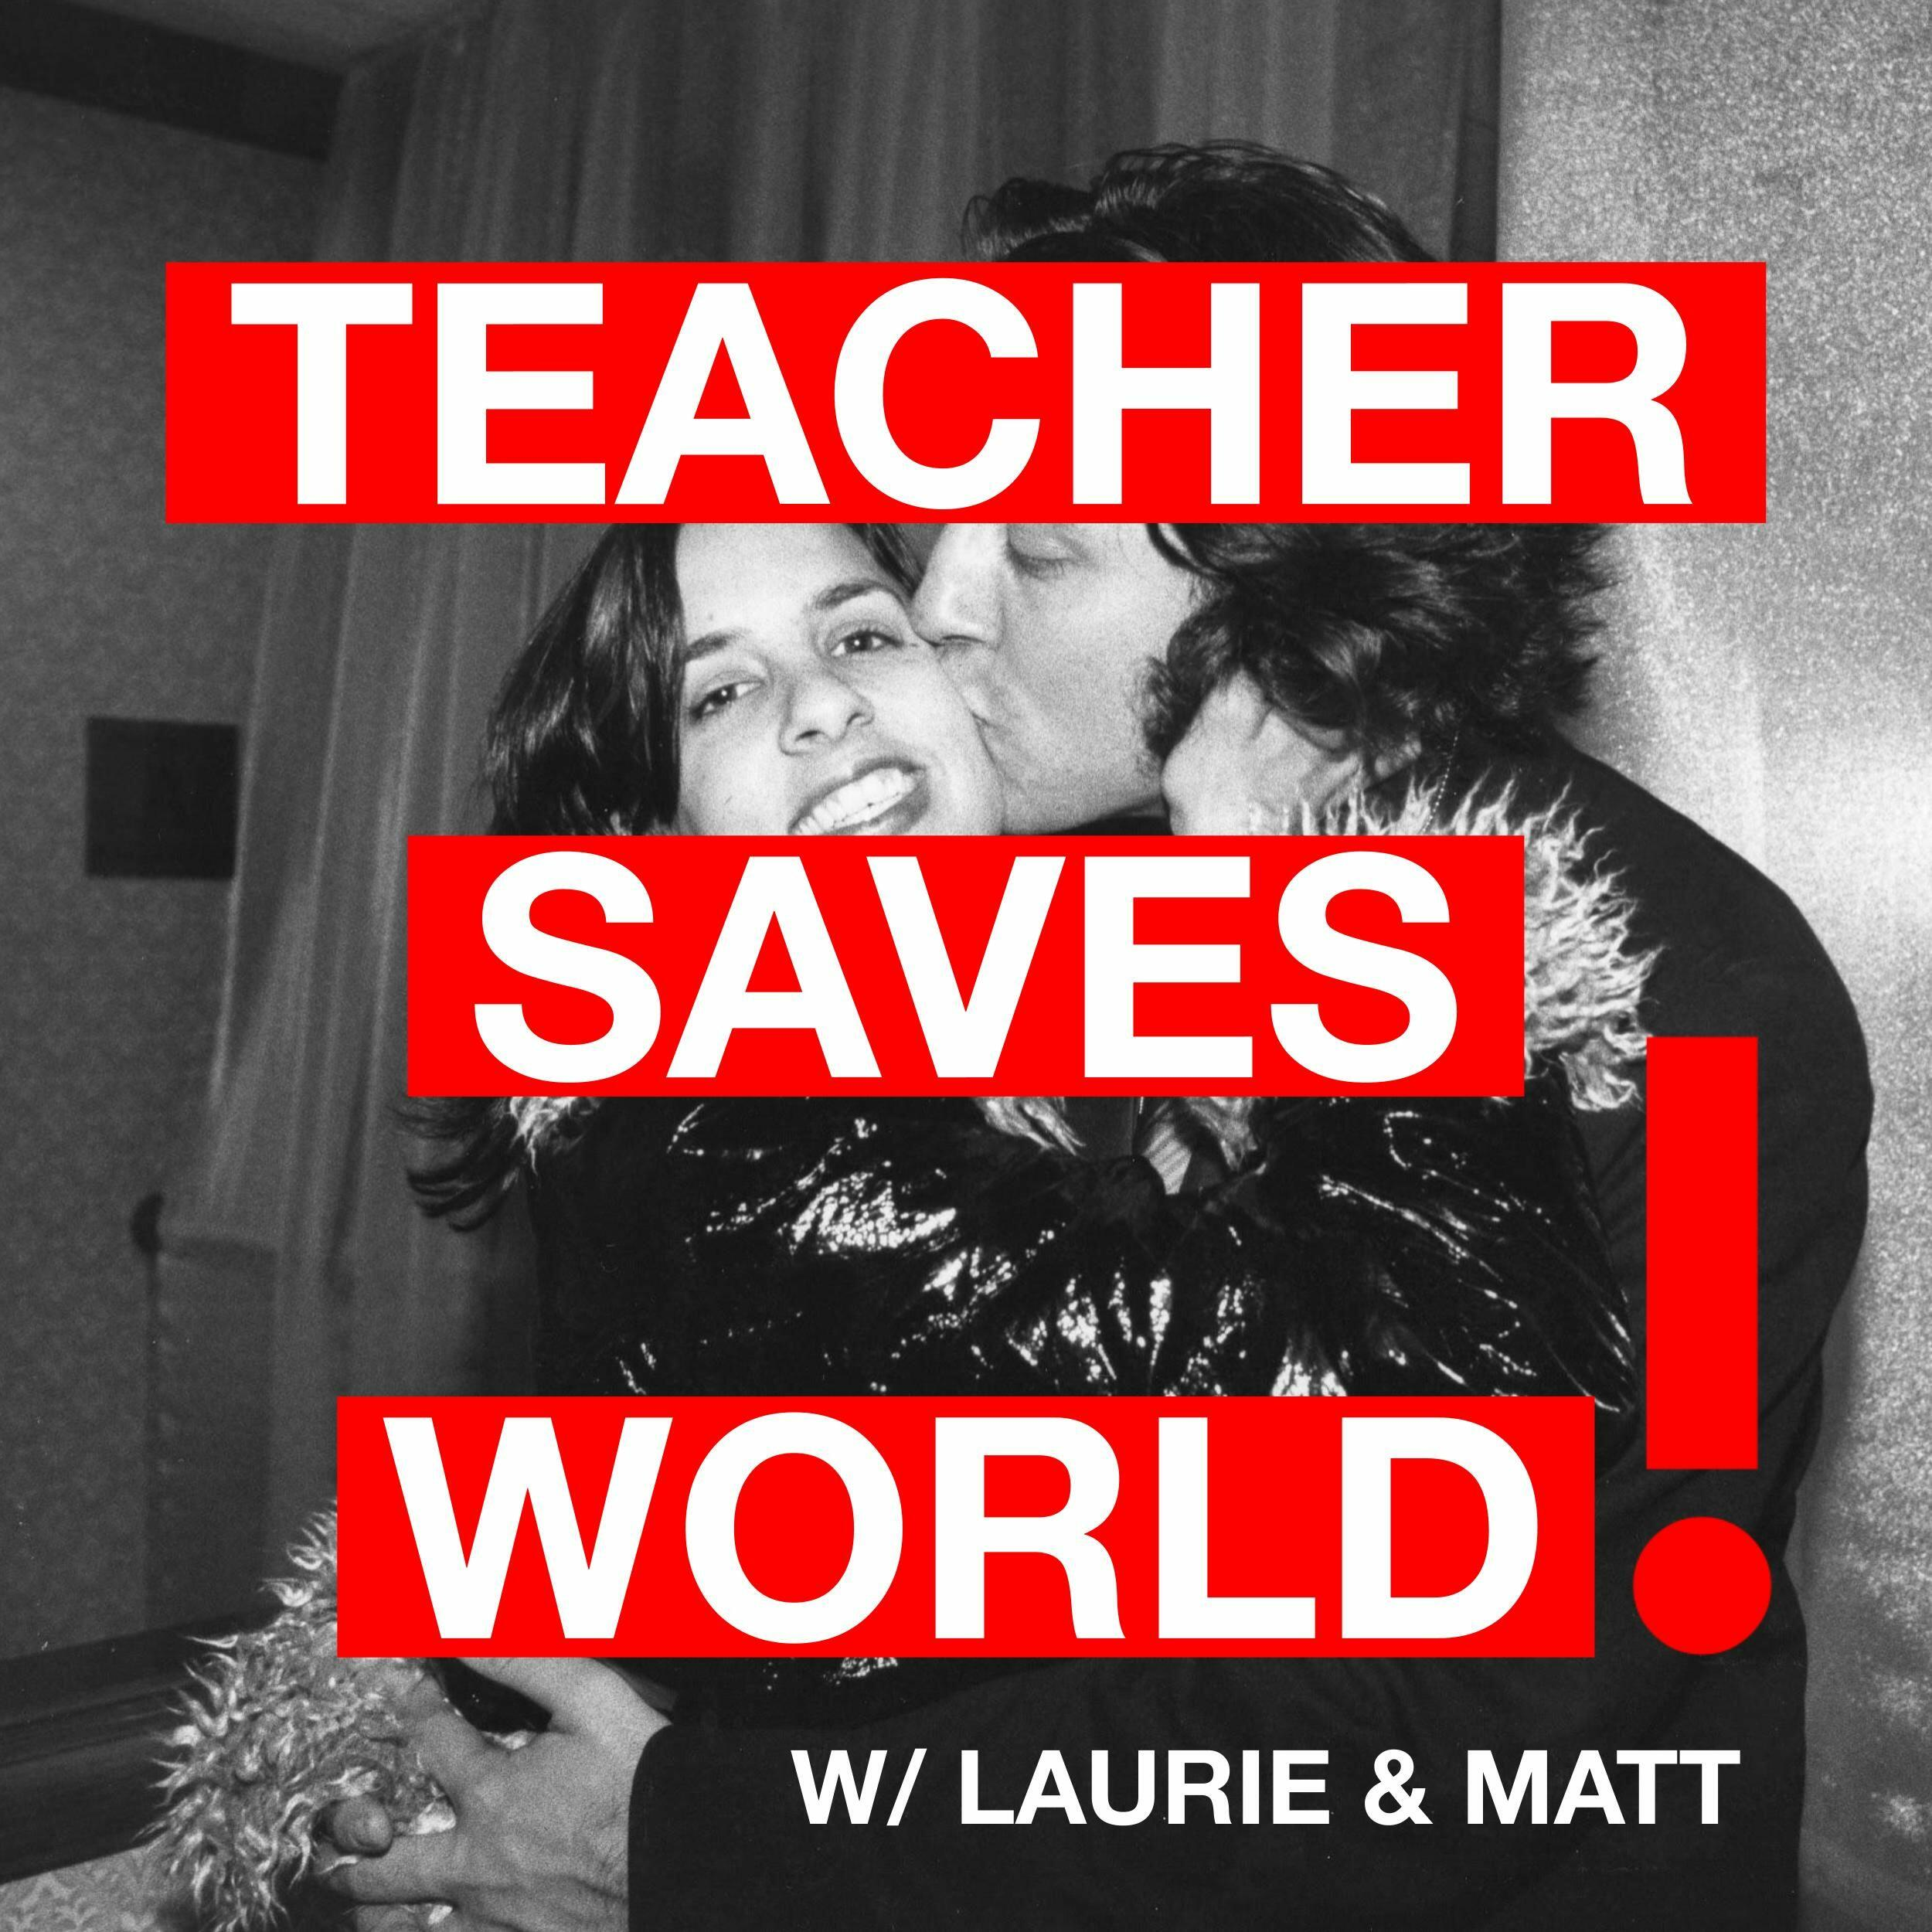 Teacher Saves World!